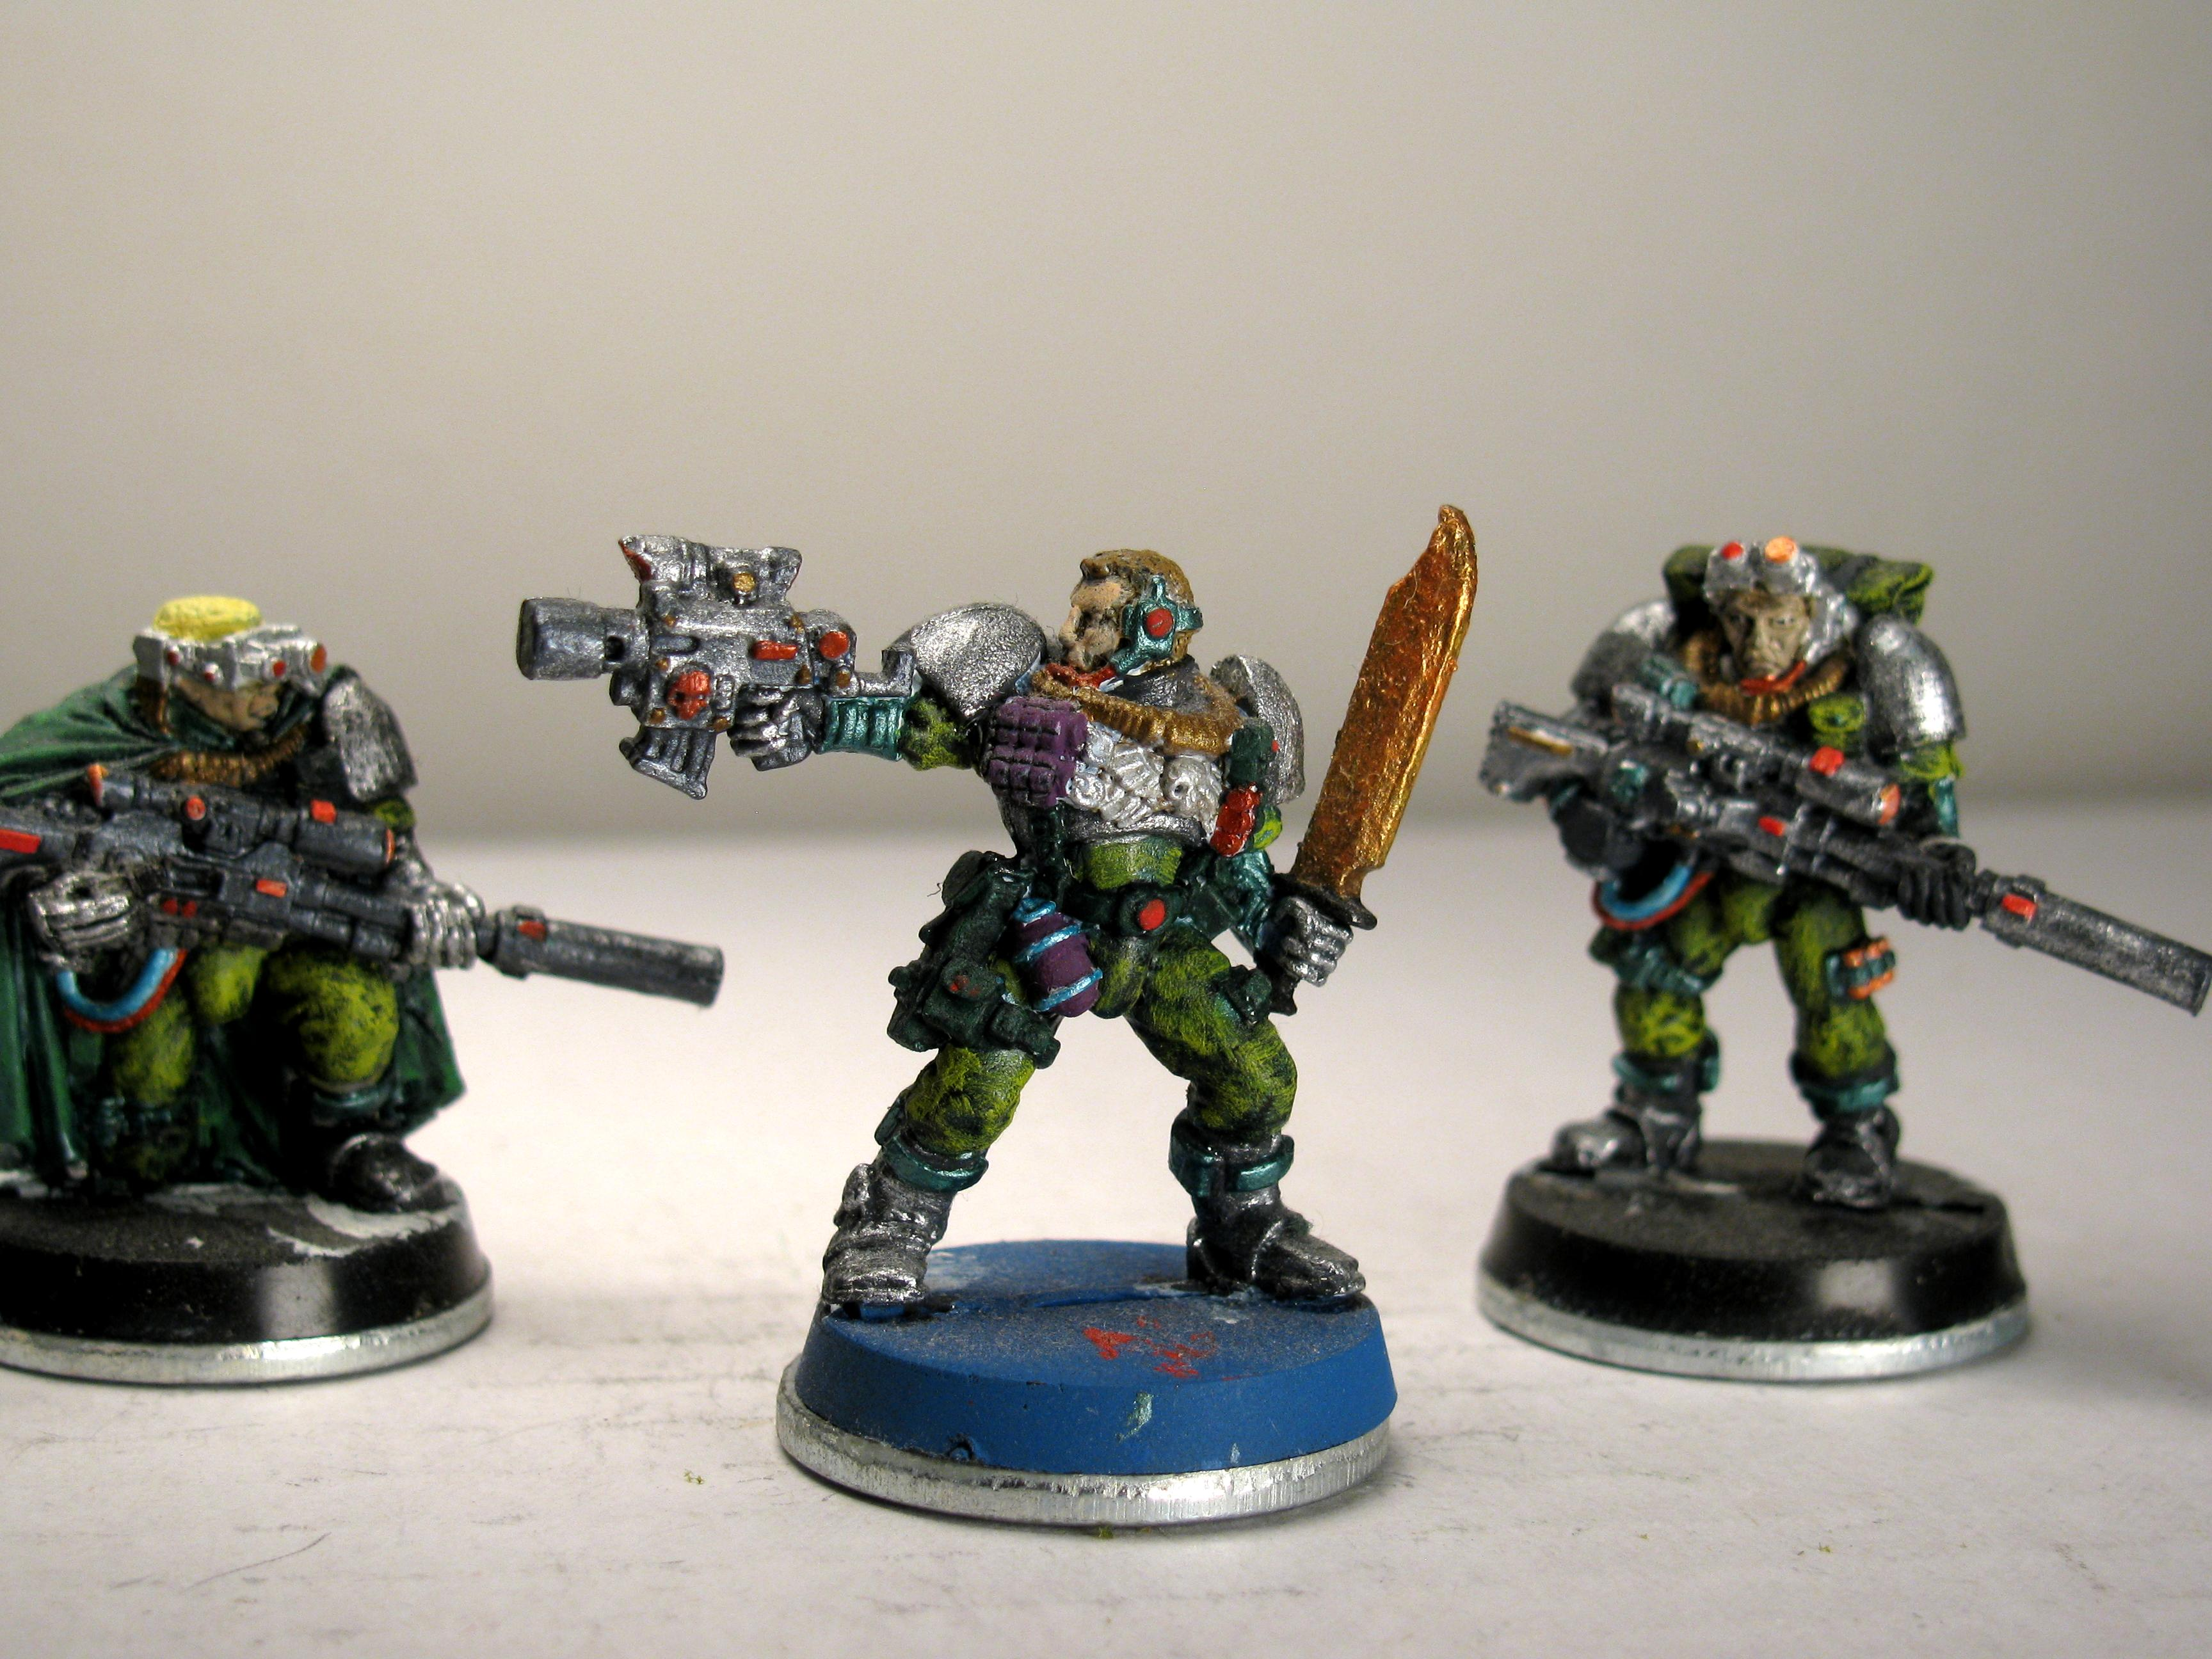 Scouts, Space Marines, Warhammer 40,000